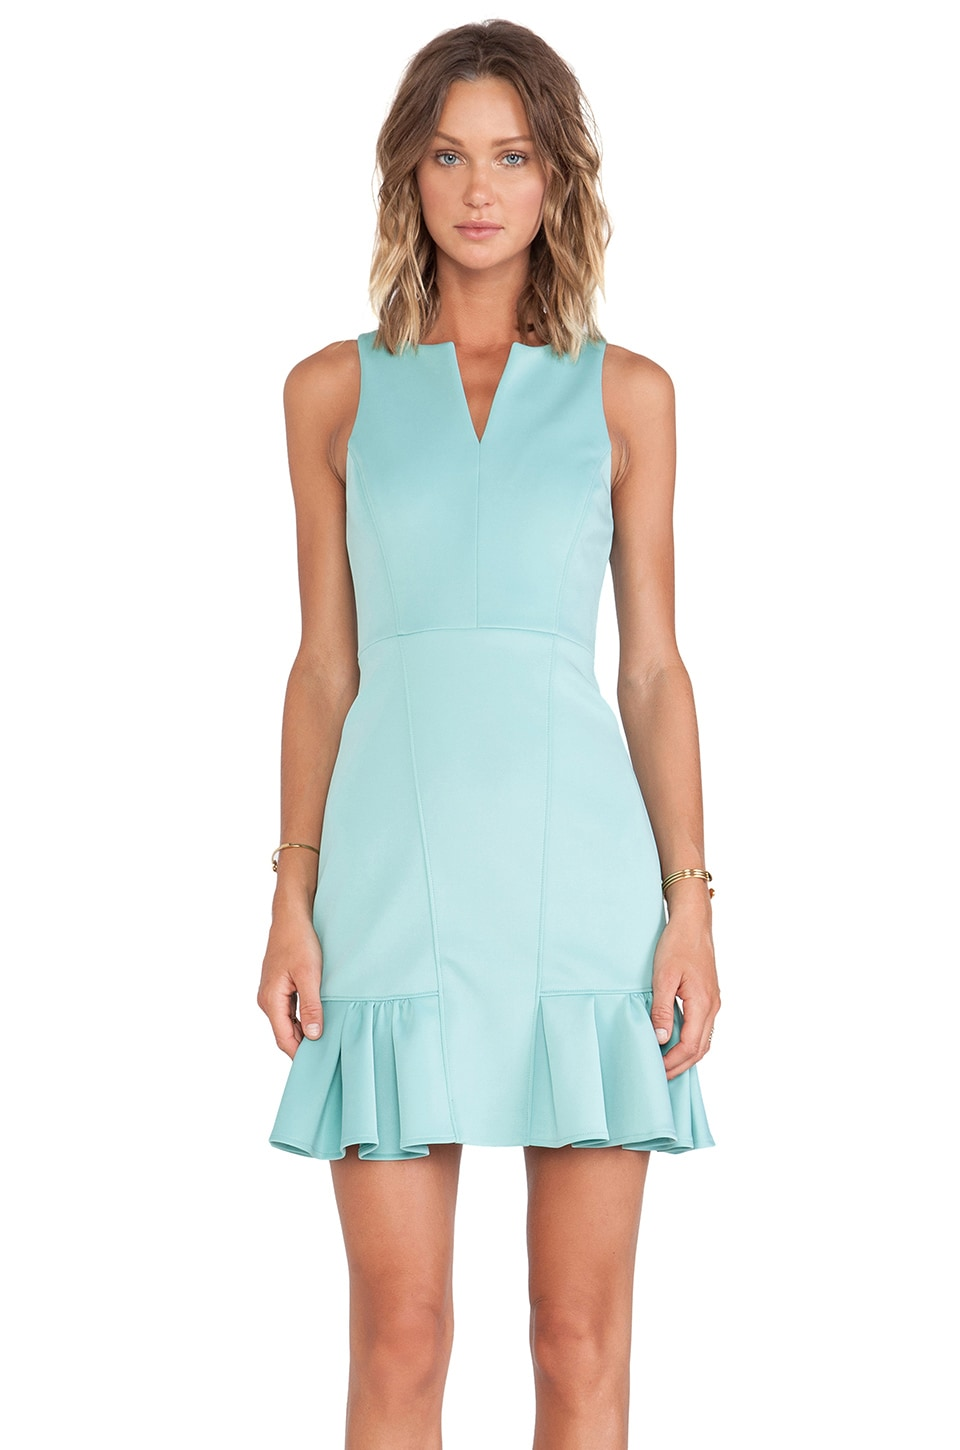 Tibi Rime Split Neck Sleeveless Dress in Lichen